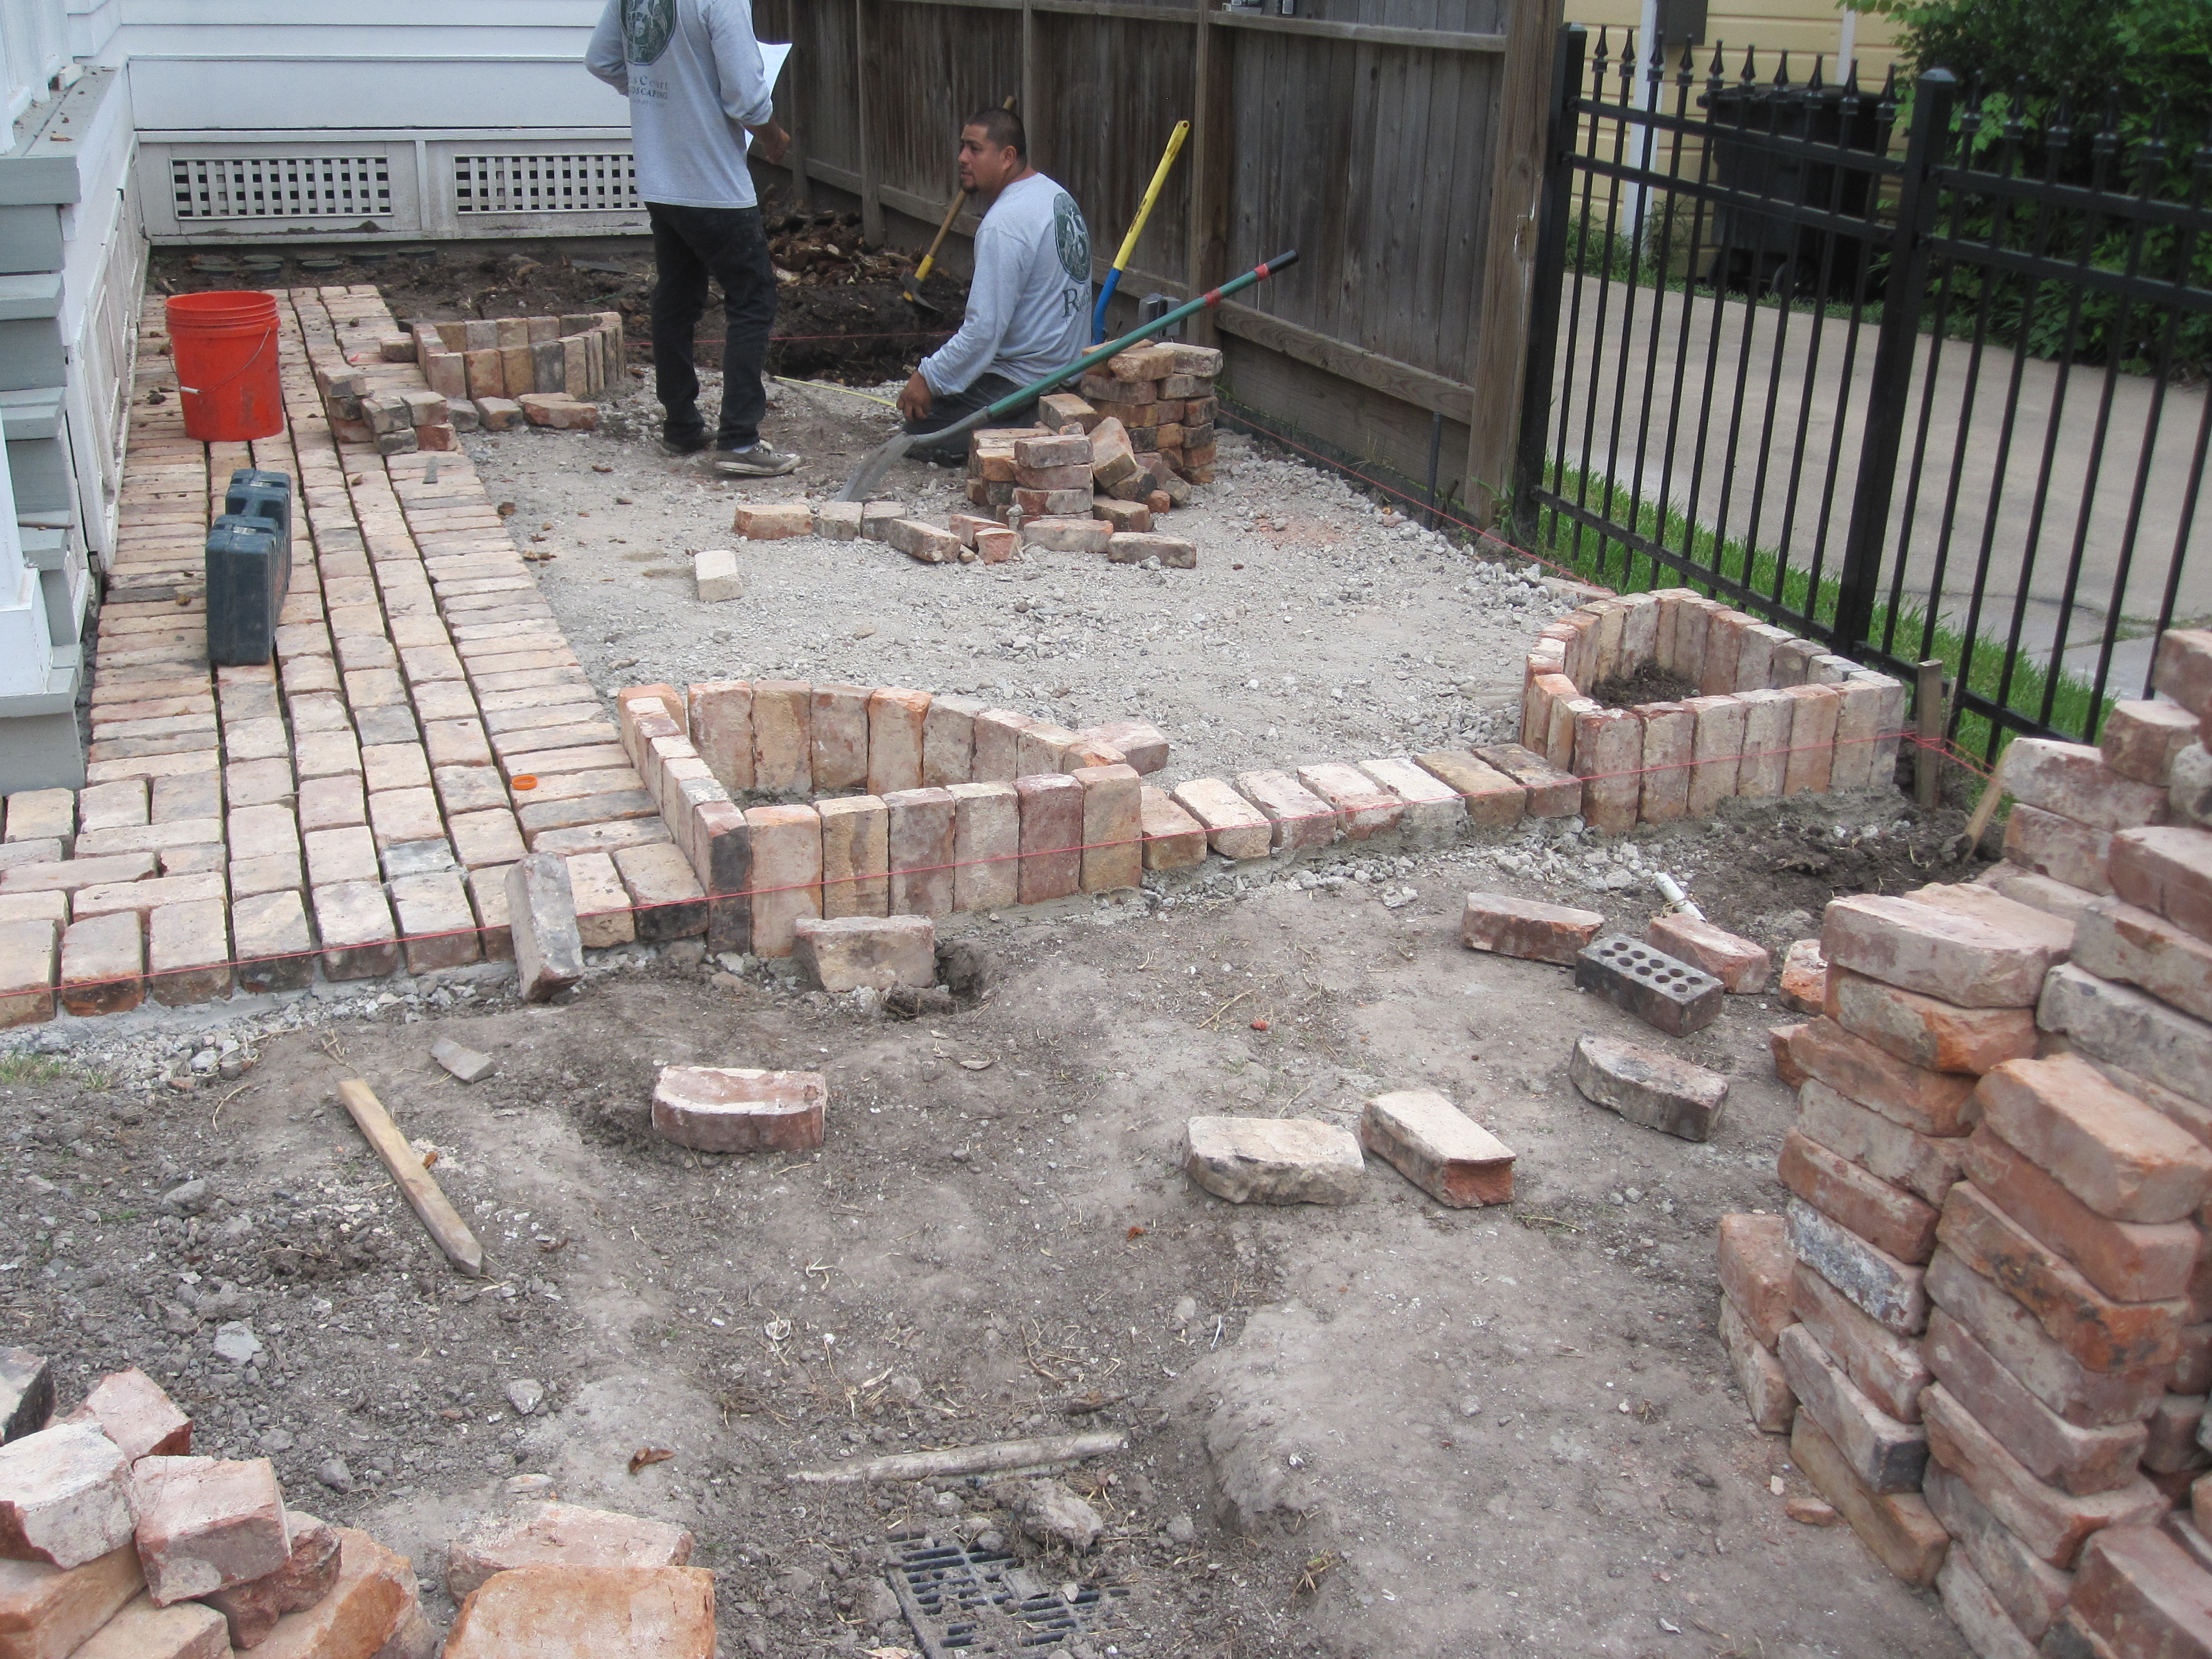 Good Working Out The Design In The Small Brick Patio.